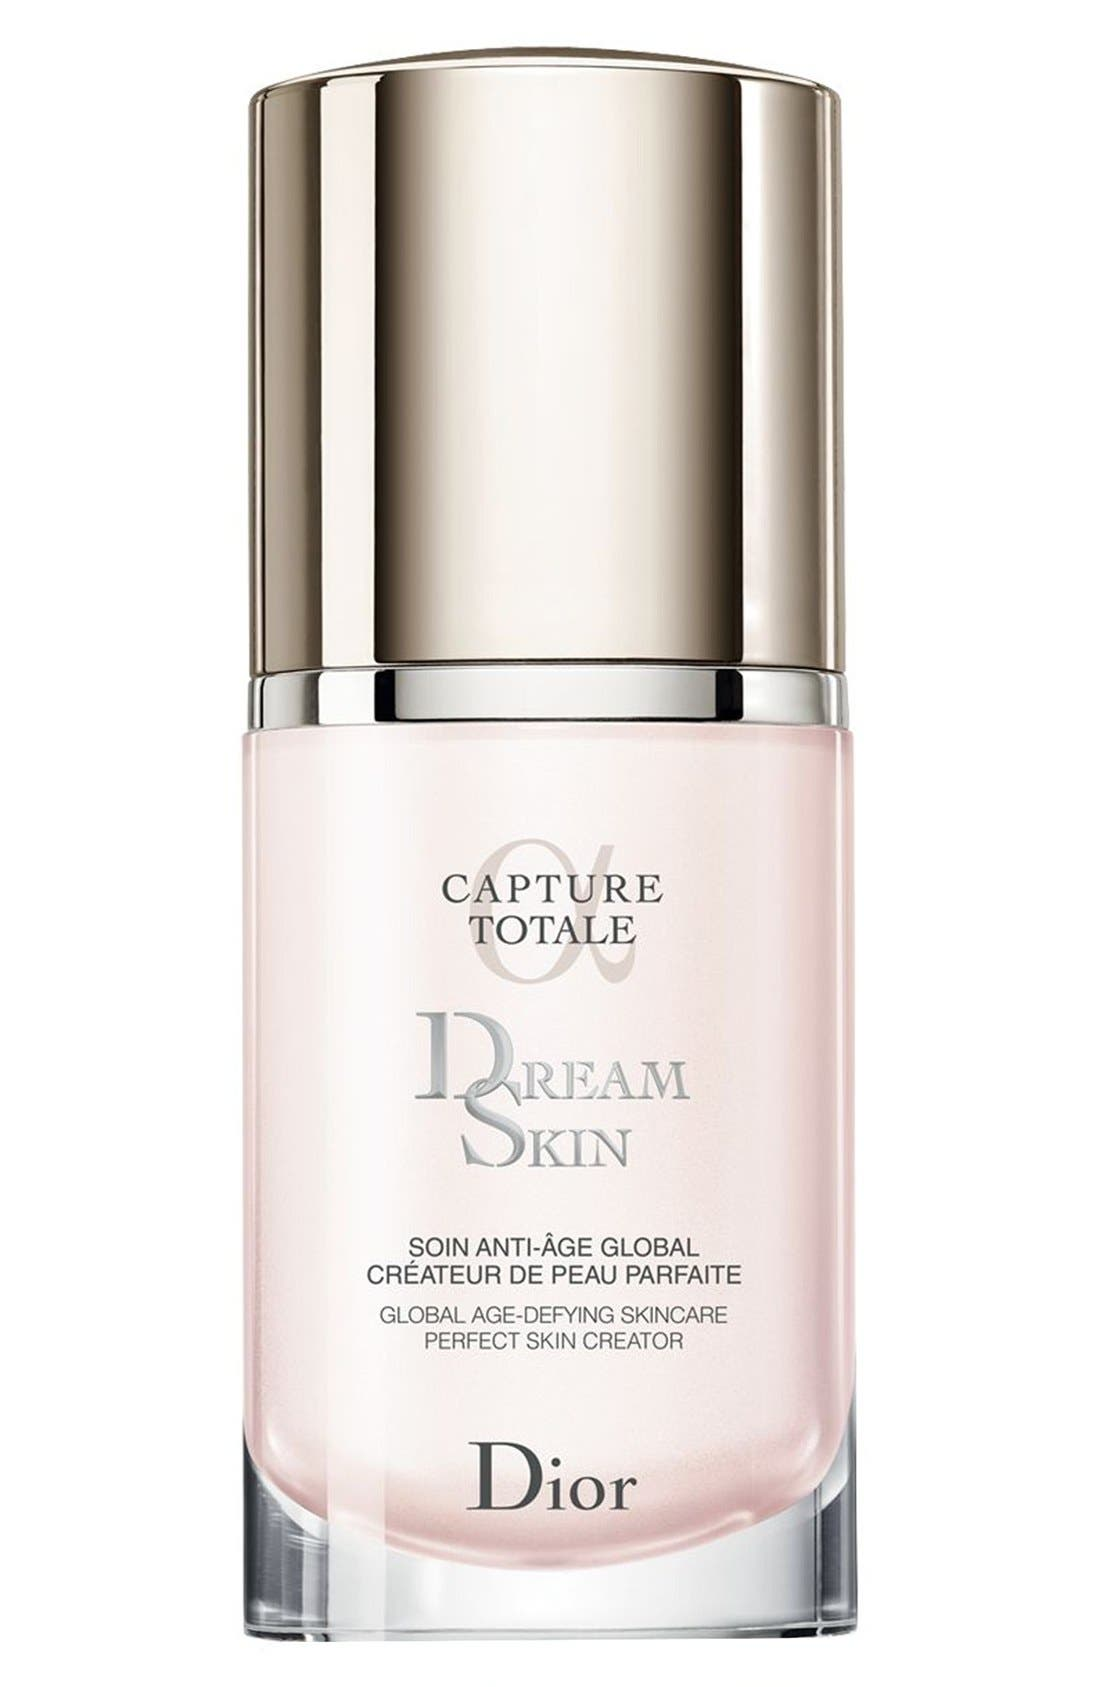 Dior 'Capture Totale - DreamSkin' Global Age-Defying Skincare Serum